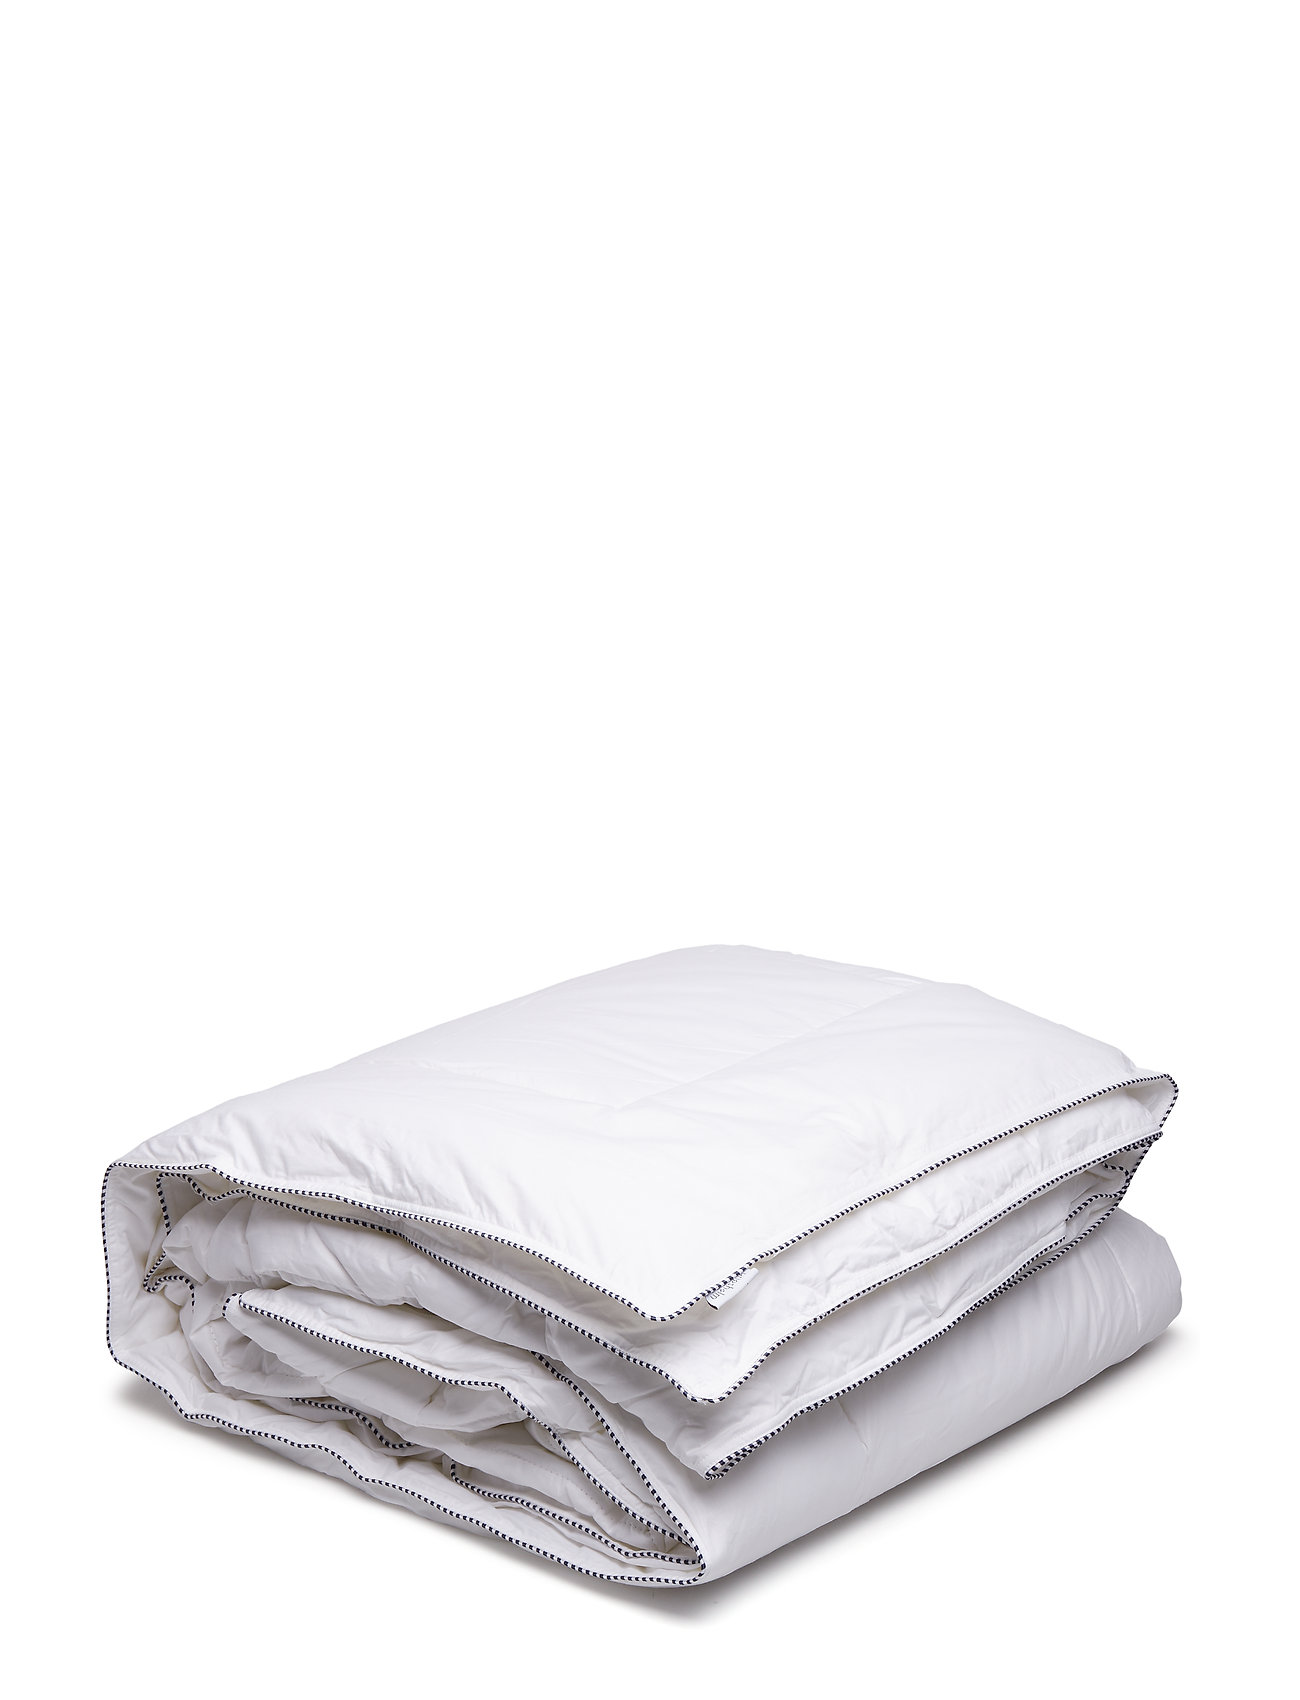 Gripsholm QUILT NELSON - WHITE